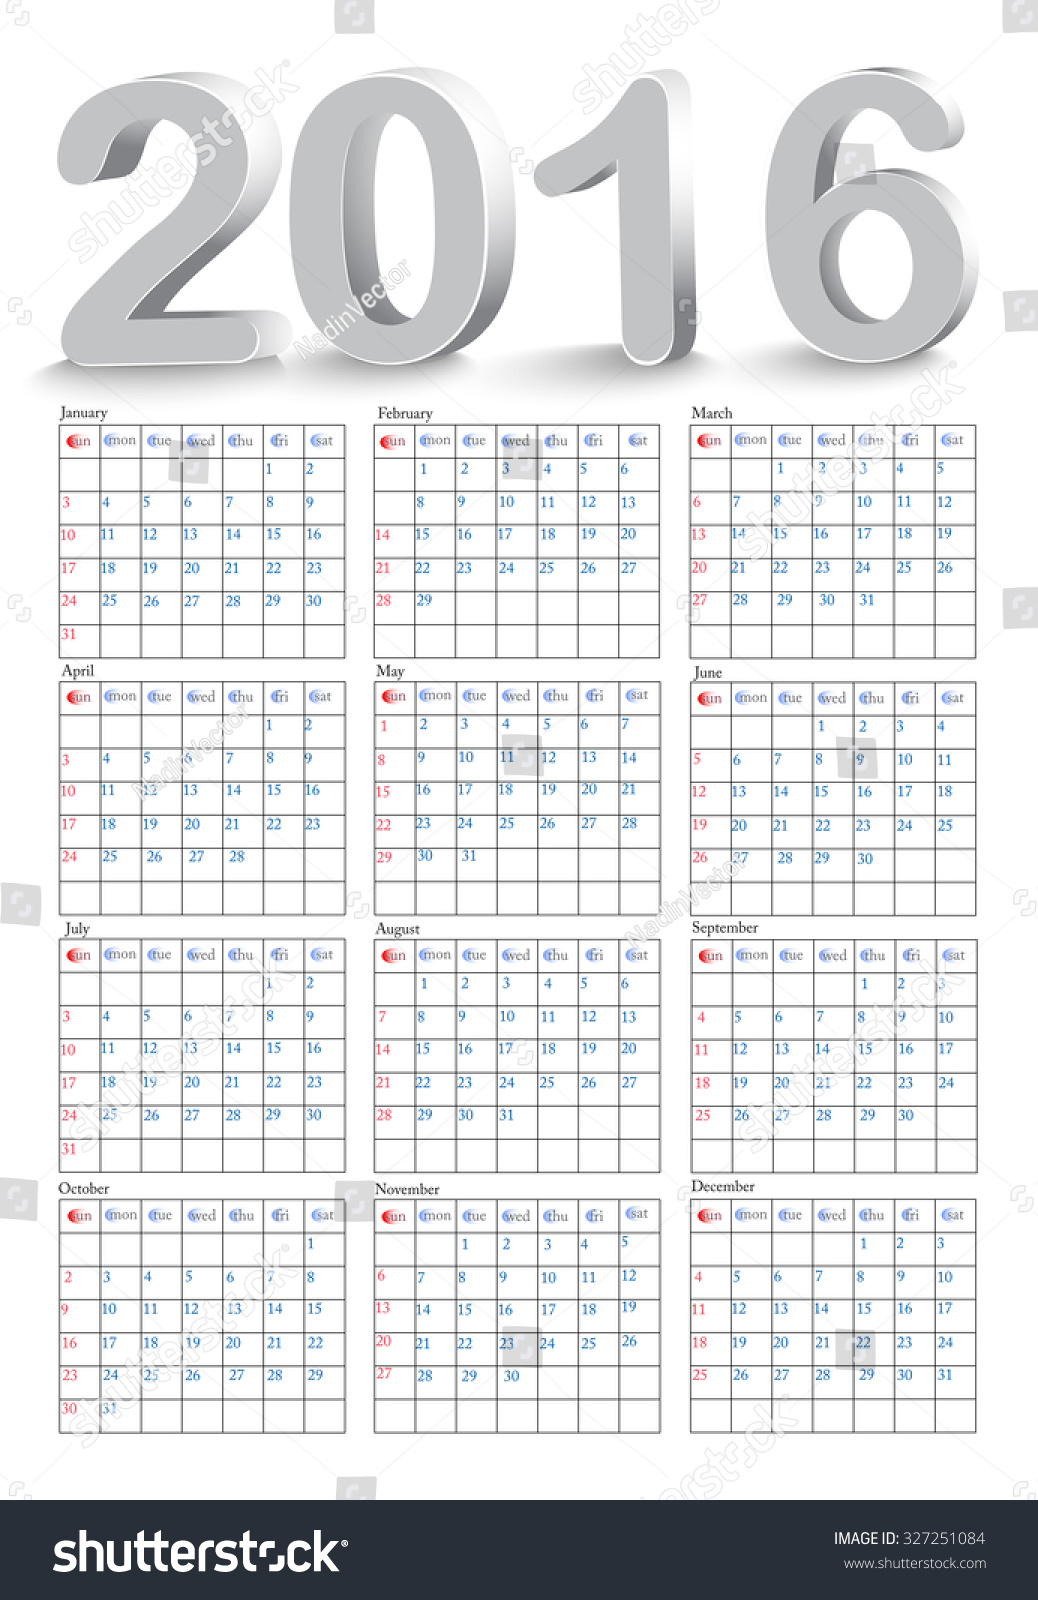 Horizontal Calendar Design : Simple calendar design horizontal week starts with